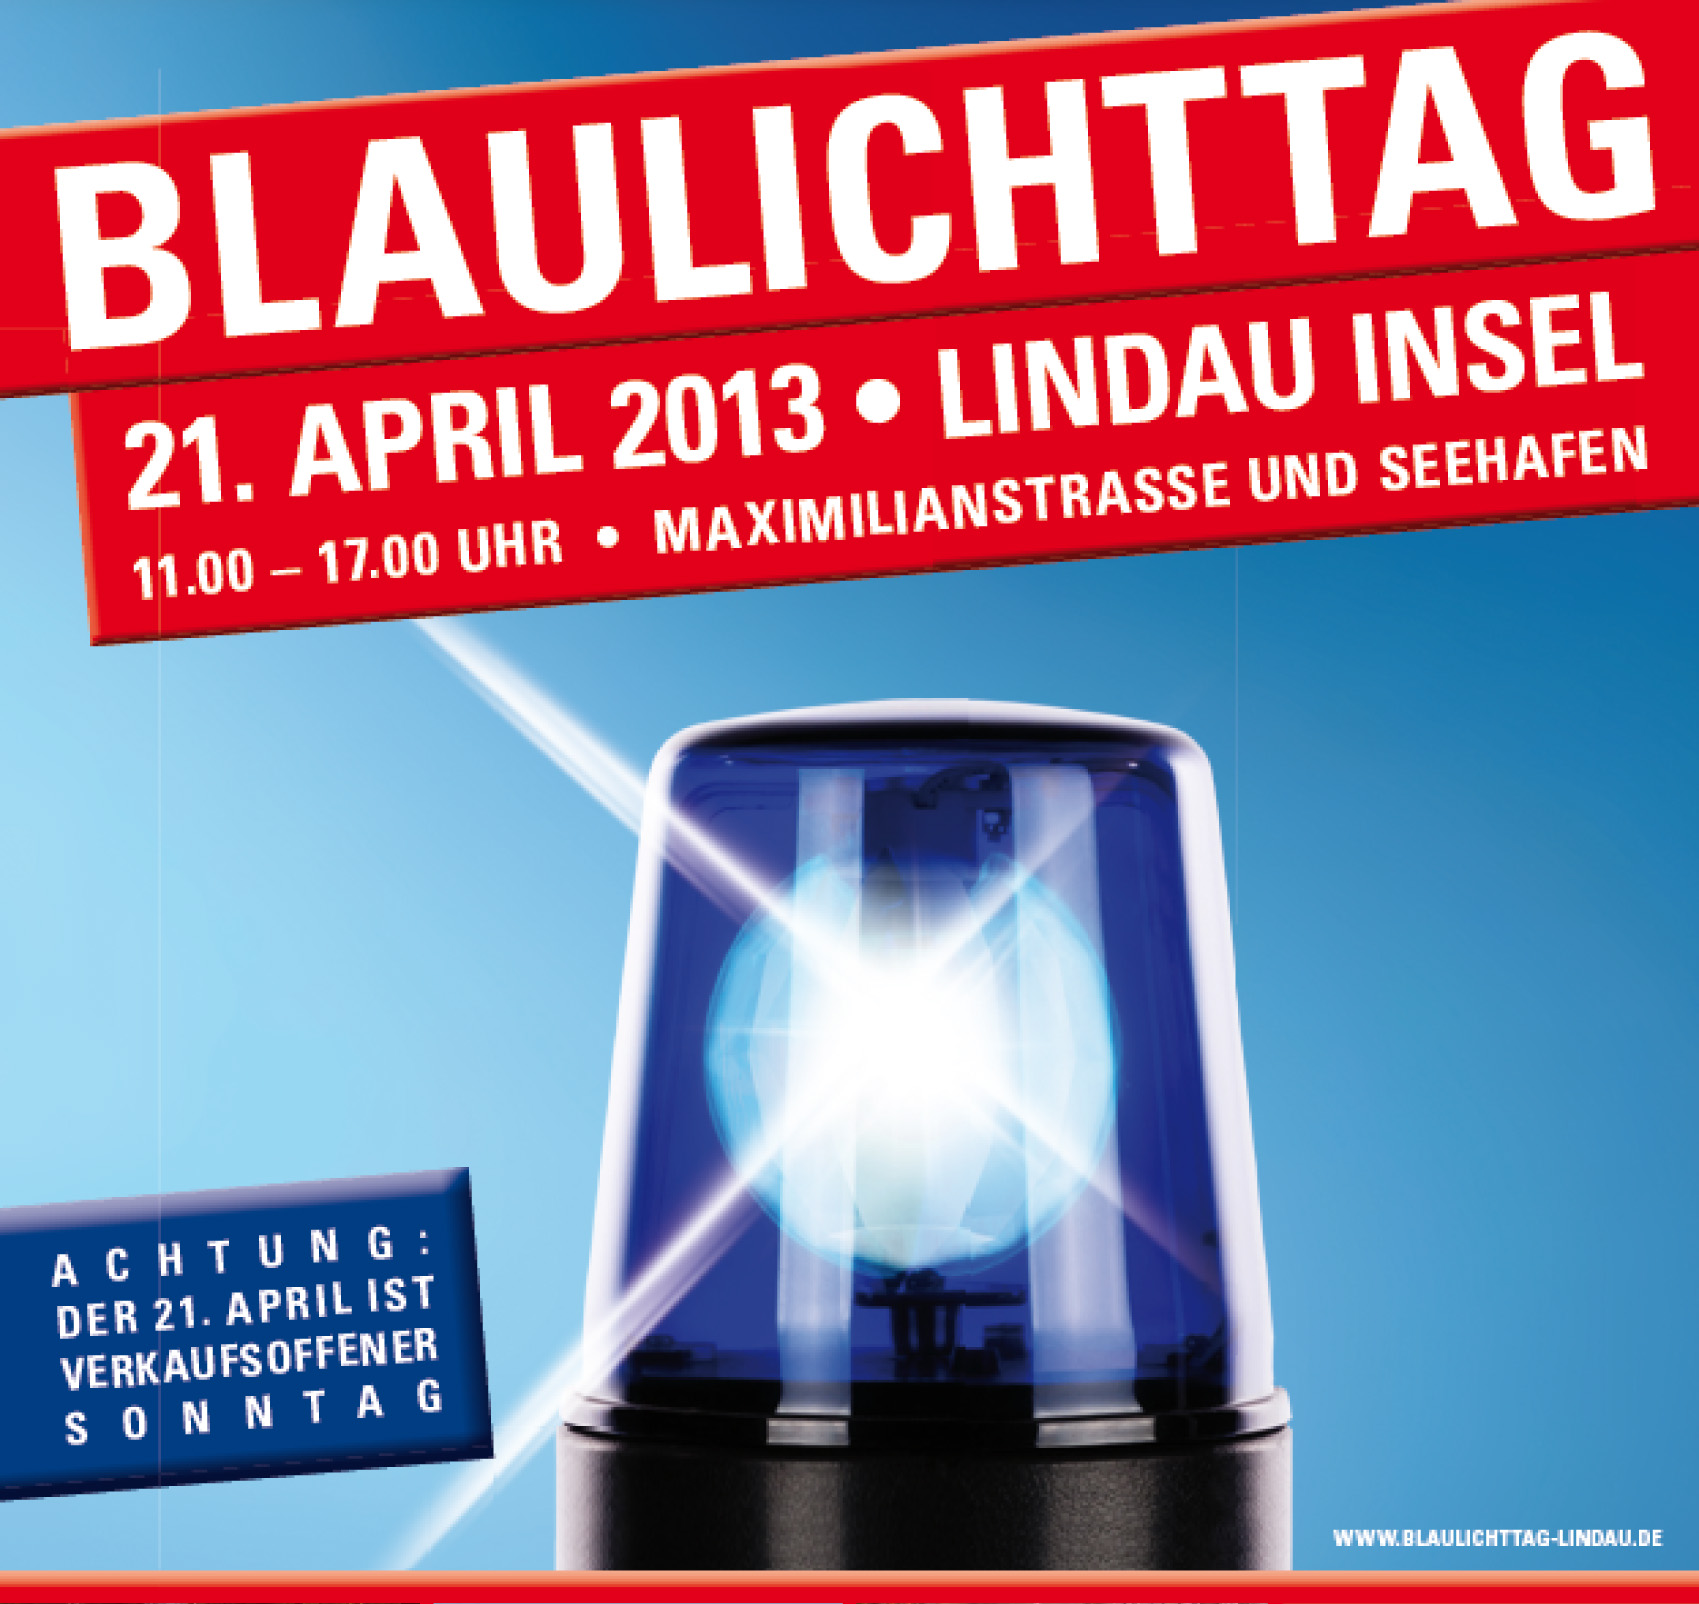 lindauer blaulichttag 21-04-2013 blaulicht new-facts-eu